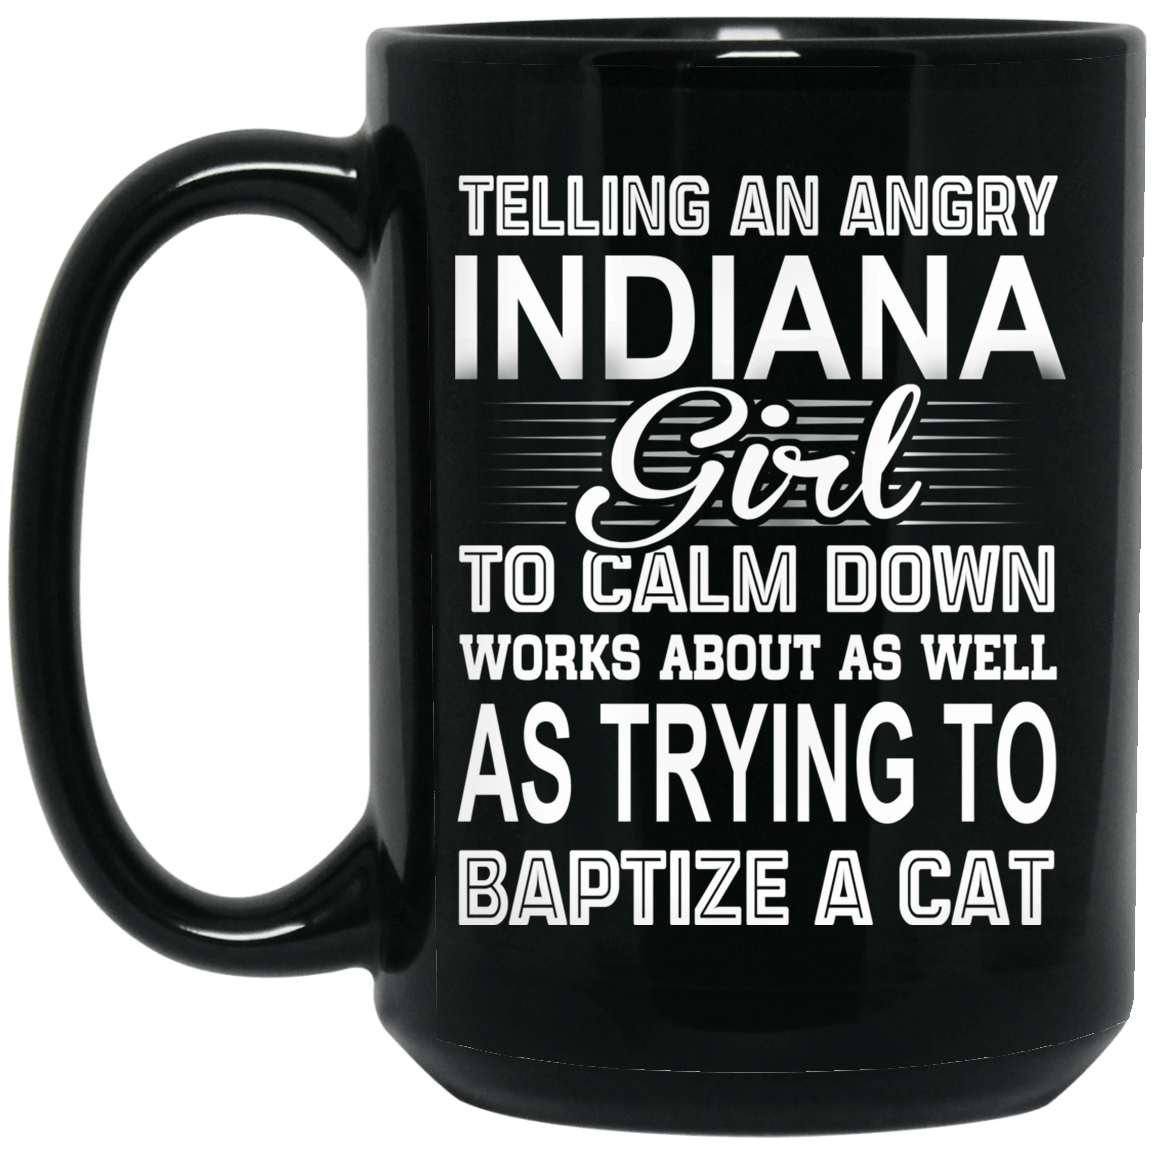 Telling An Angry Indiana Girl To Calm Down Works About As Well As Trying To Baptize A Cat Mug 1066-10182-76151646-49311 - Tee Ript